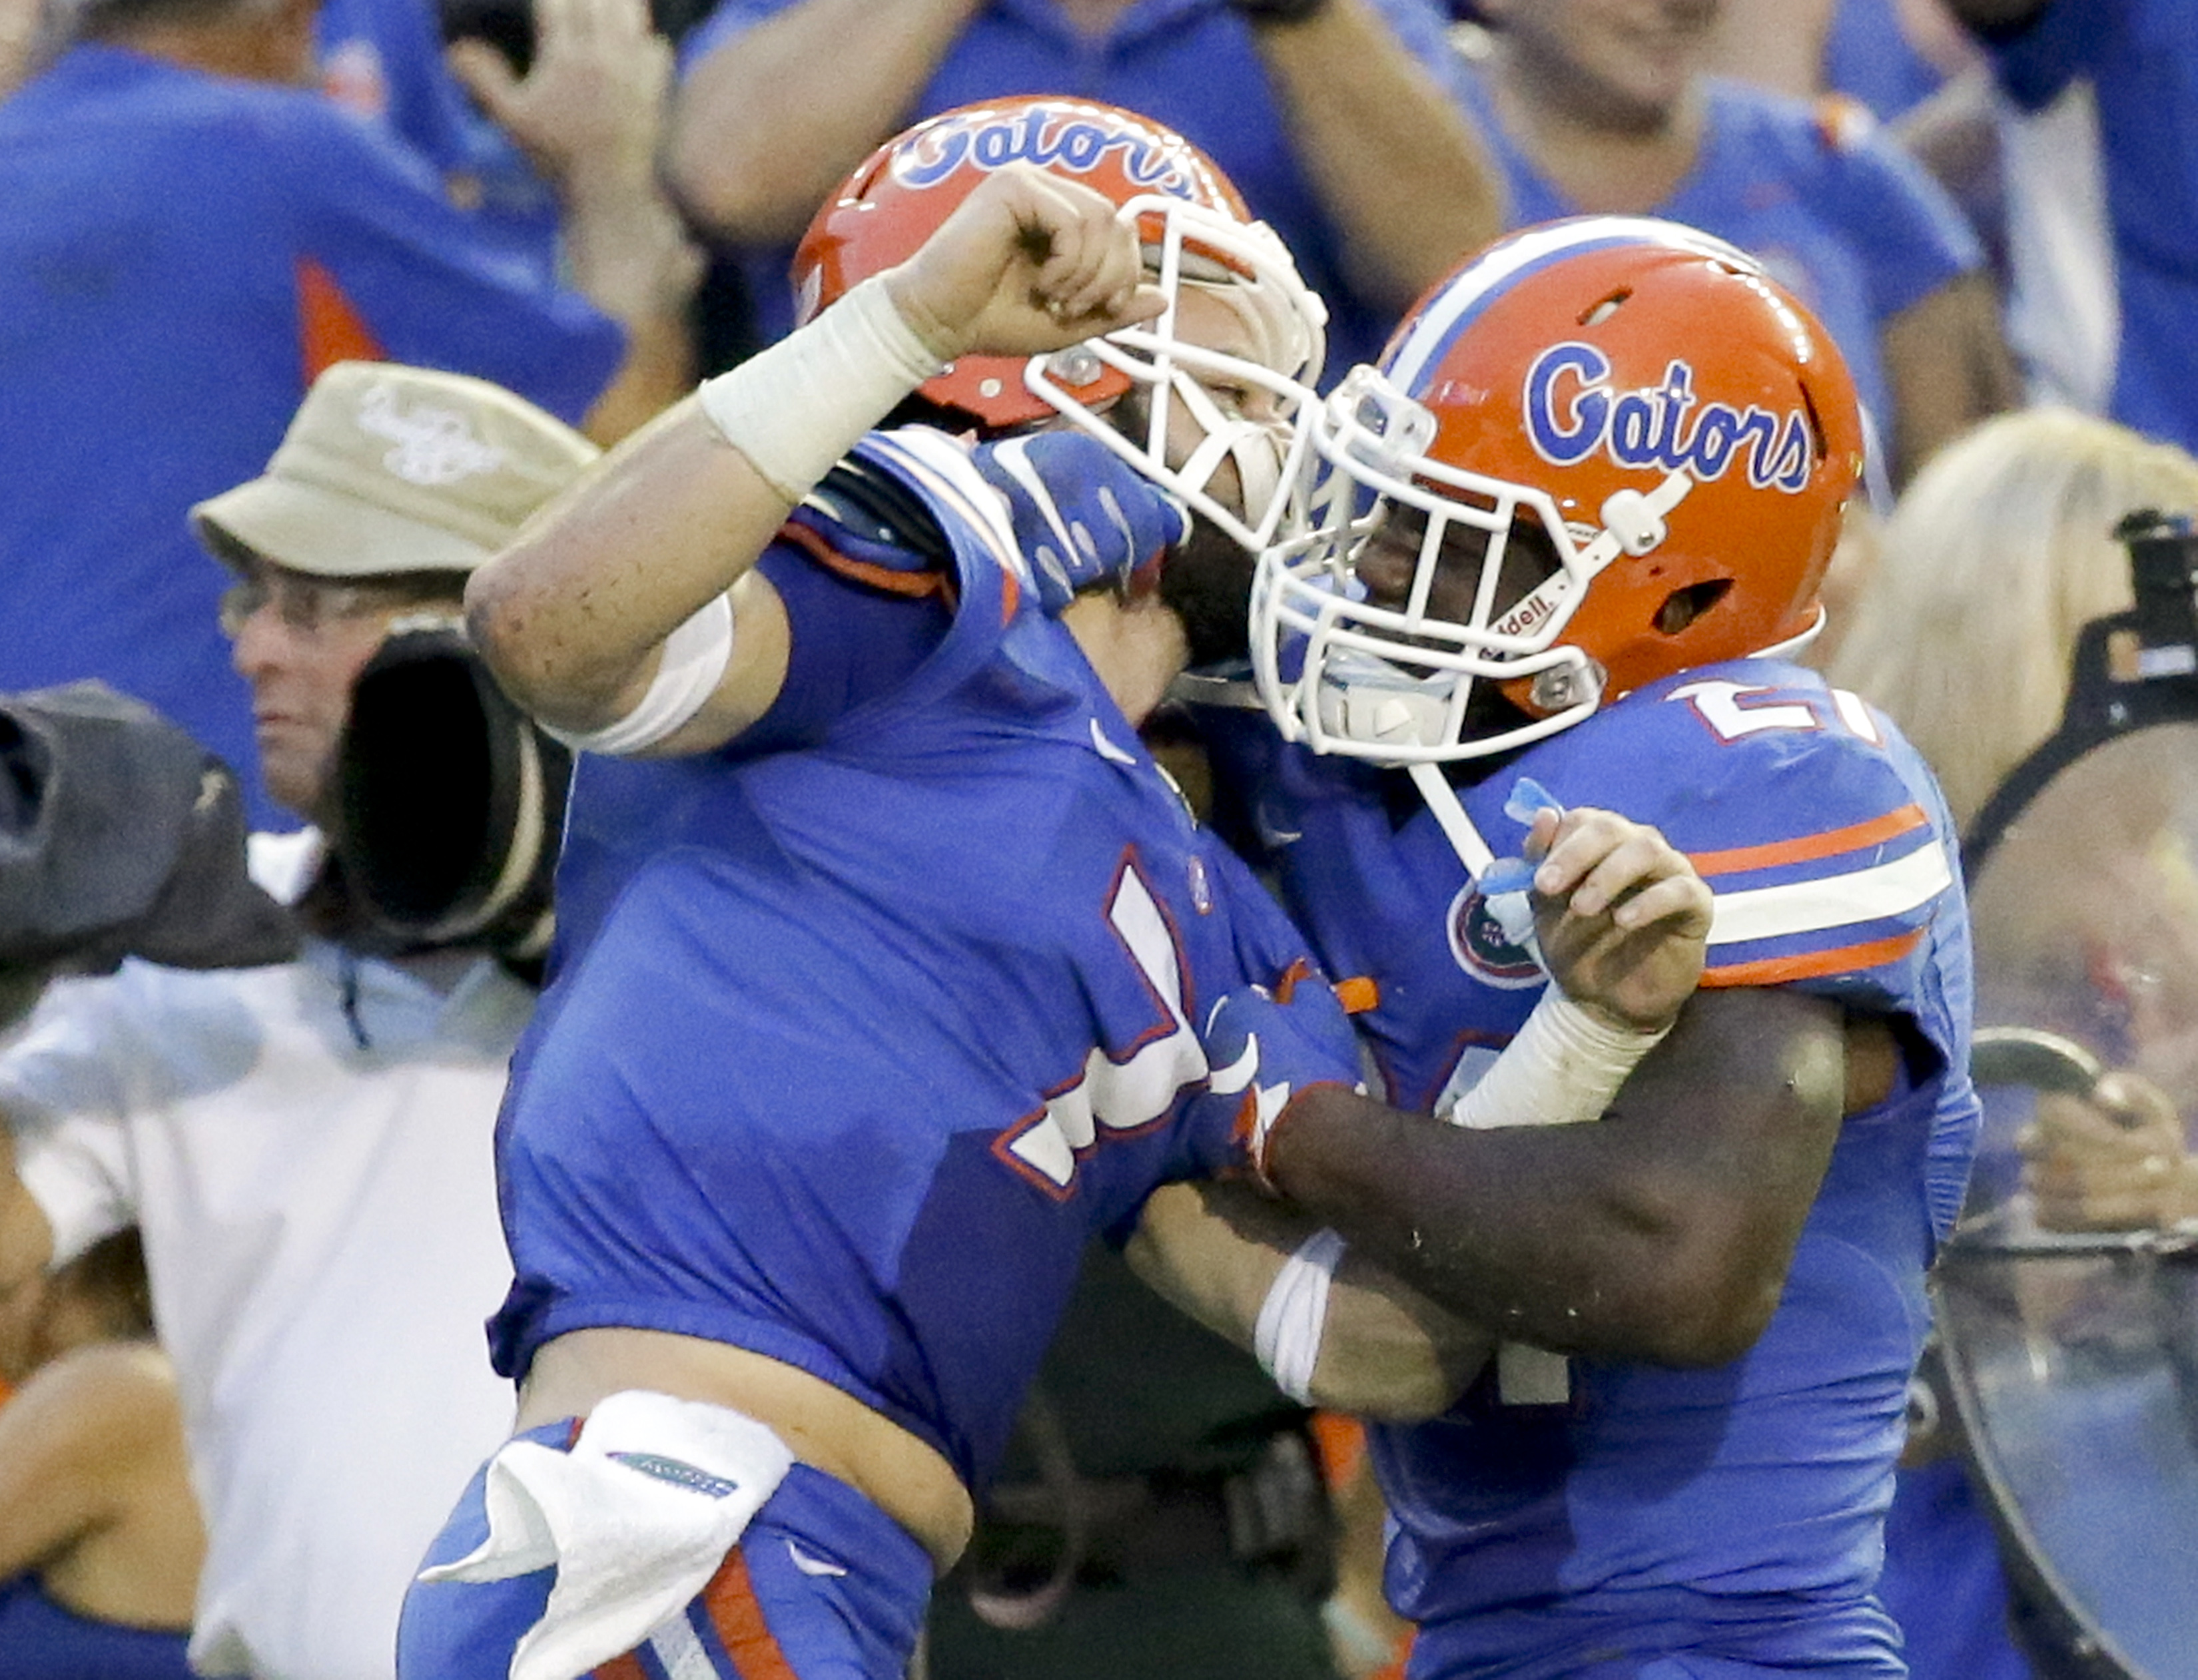 Florida quarterback Will Grier, left, and running back Kelvin Taylor celebrate after Grier threw a 63-yard touchdown pass to wide receiver Antonio Callaway for the winning touchdown against Tennessee during the final minutes of an NCAA college football ga